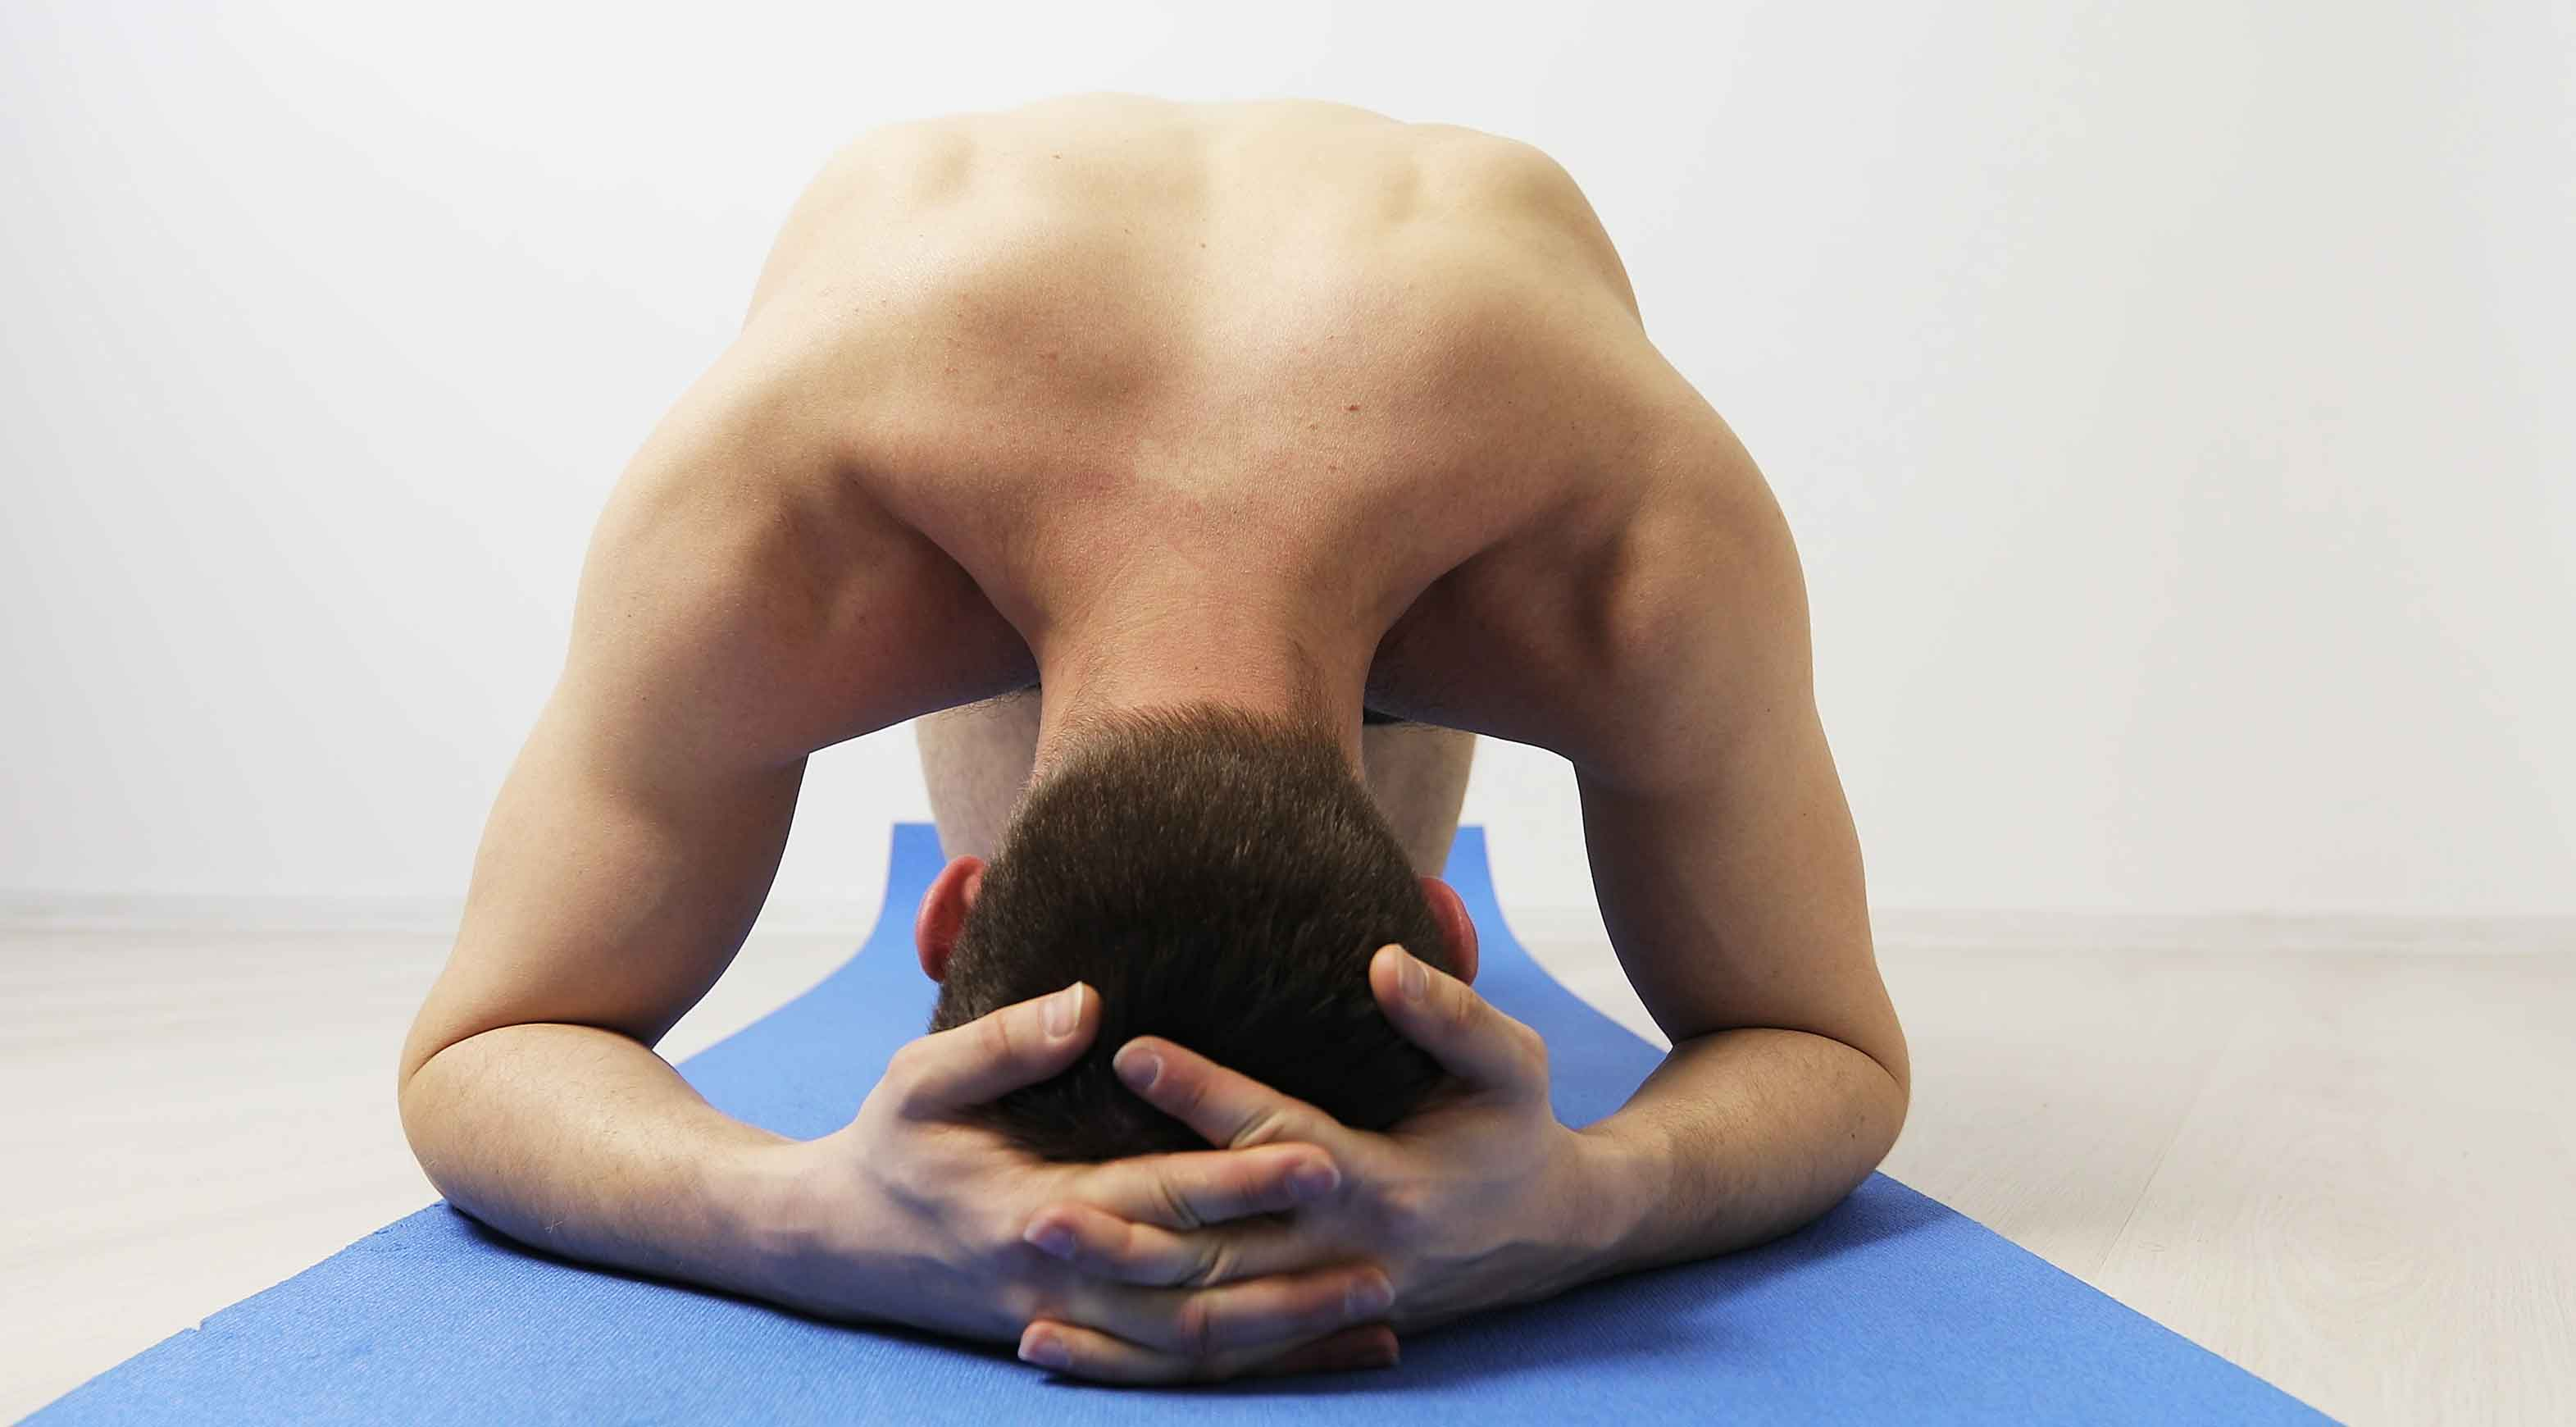 Yoga More Effective for Back Pain than Meds, Study Finds